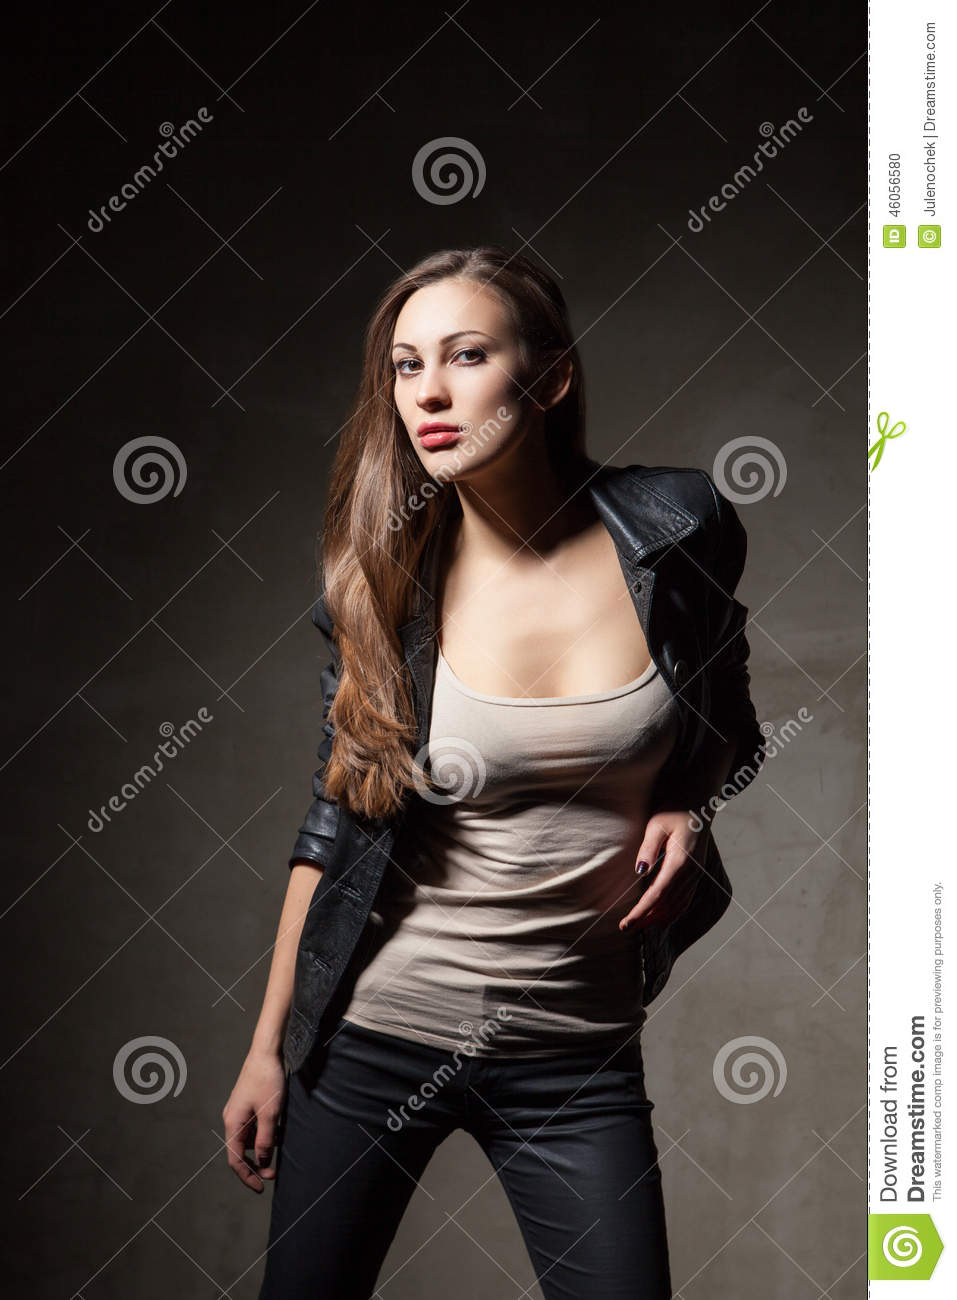 Unique Attractive Woman In Black Leather Jacket And Pants Stock Photo  Image